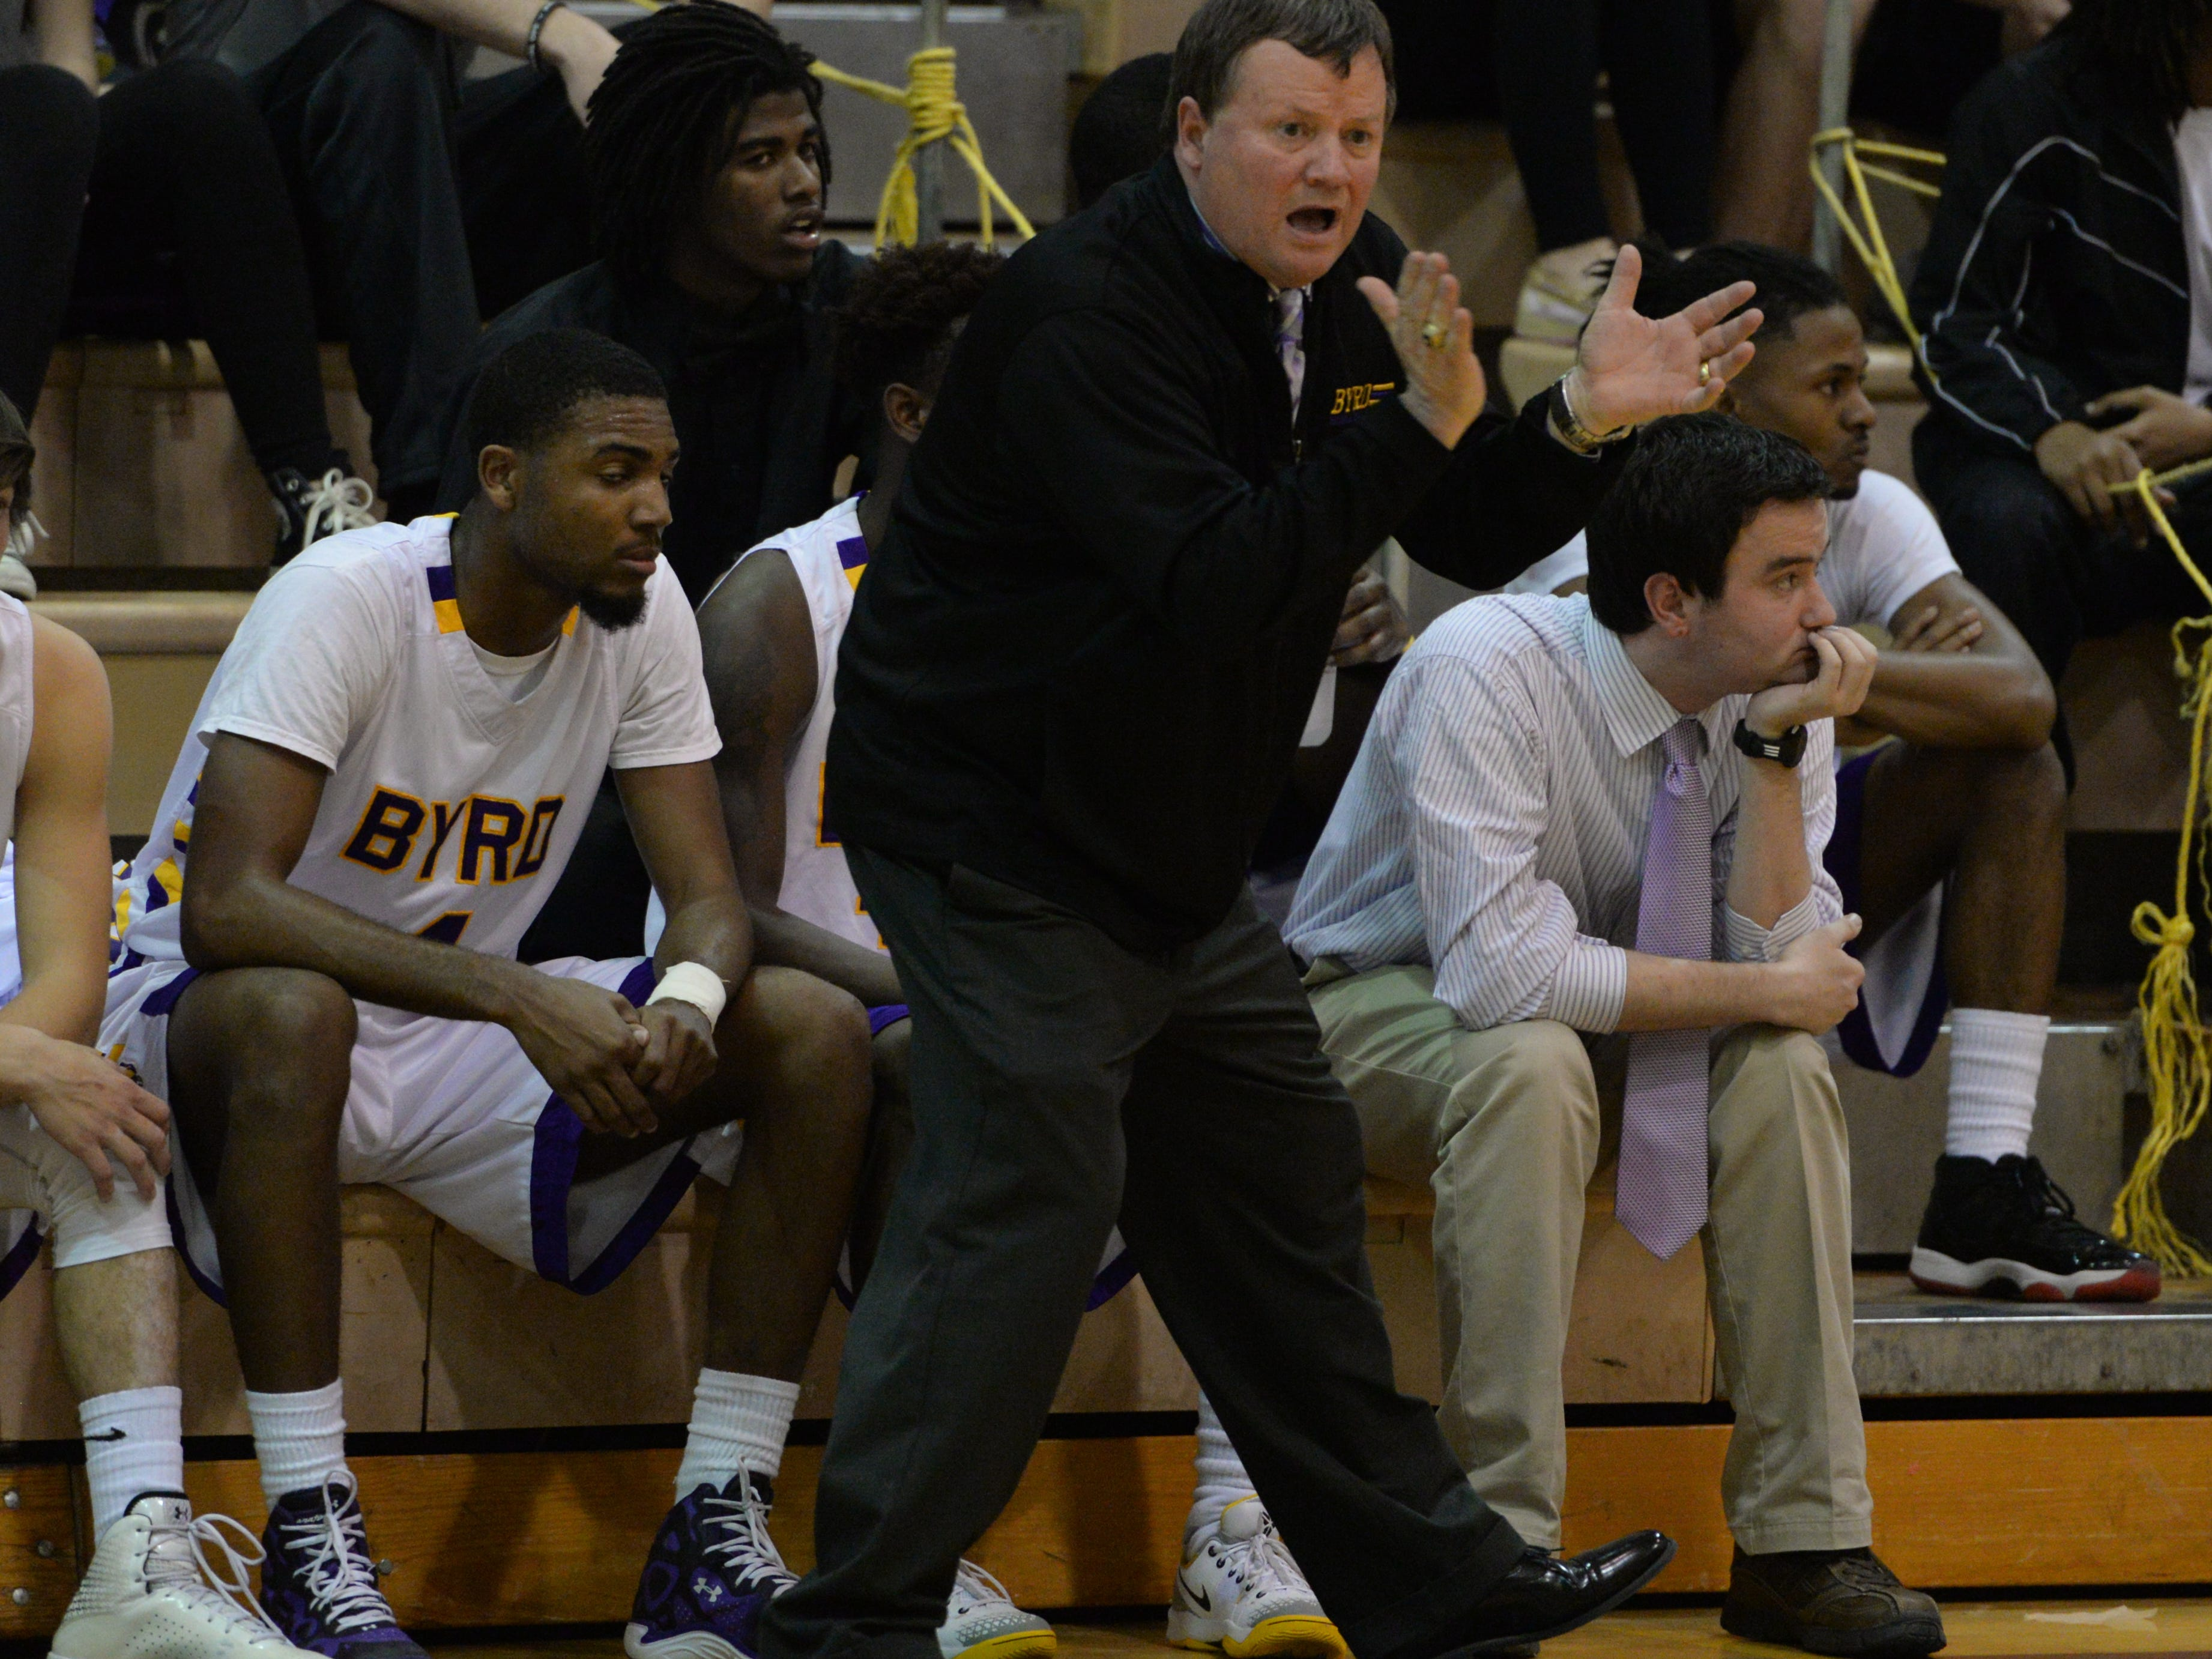 Byrd coach Rusty Johnson yells to his team during a win against Southwood this season.